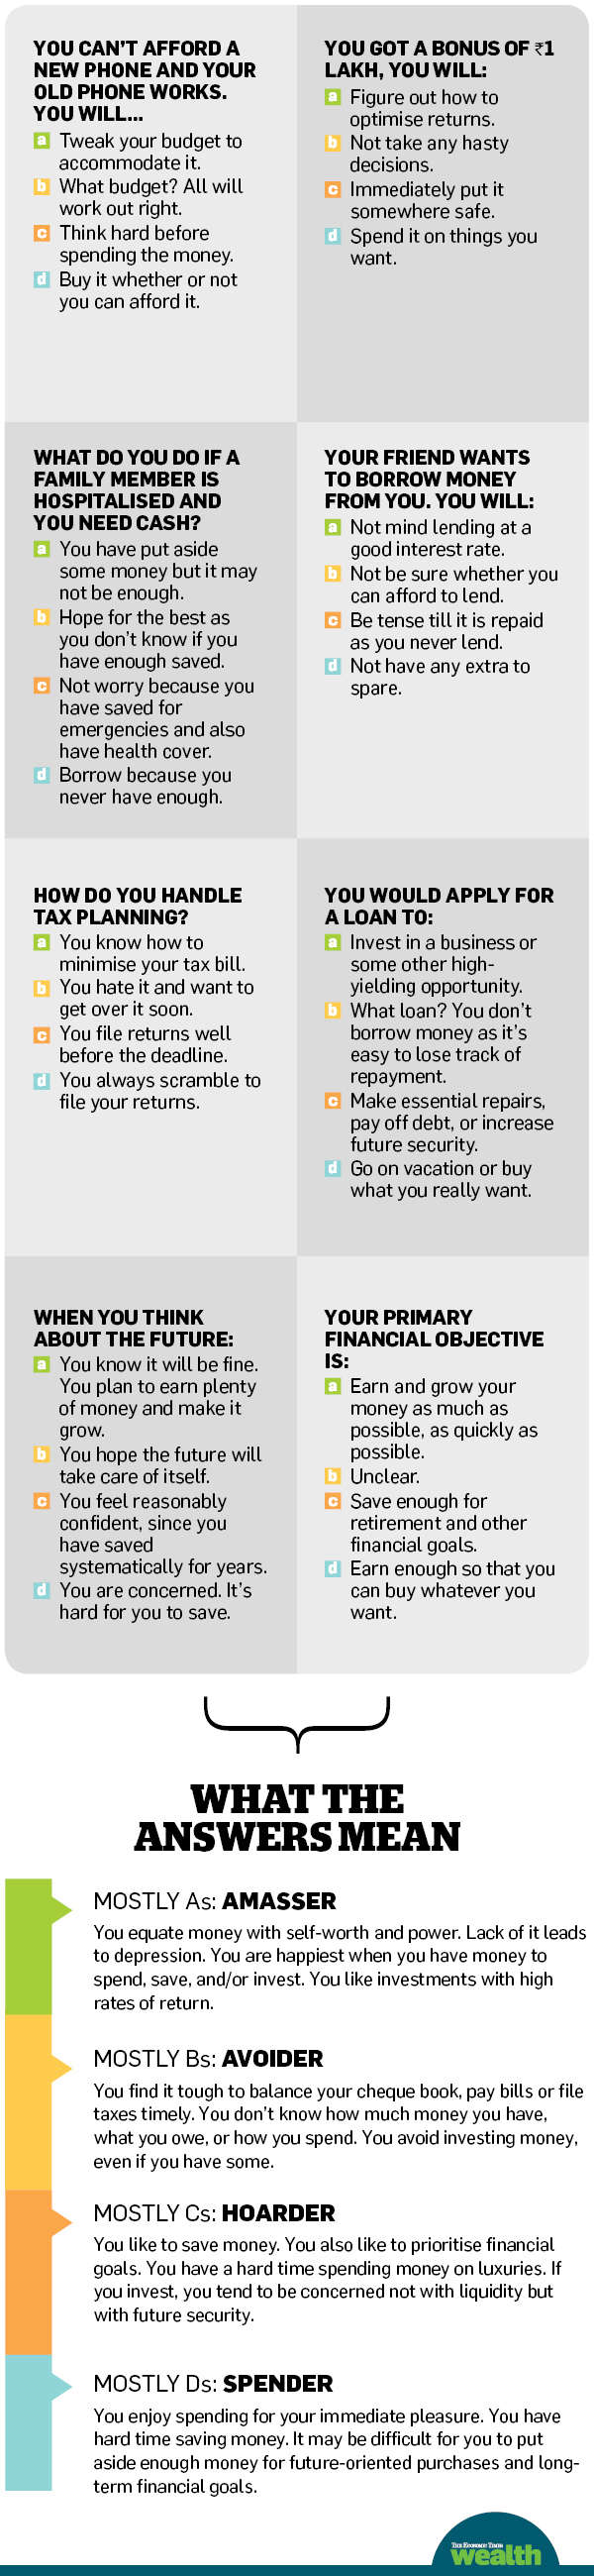 What's your money personality? Take this quiz to find out